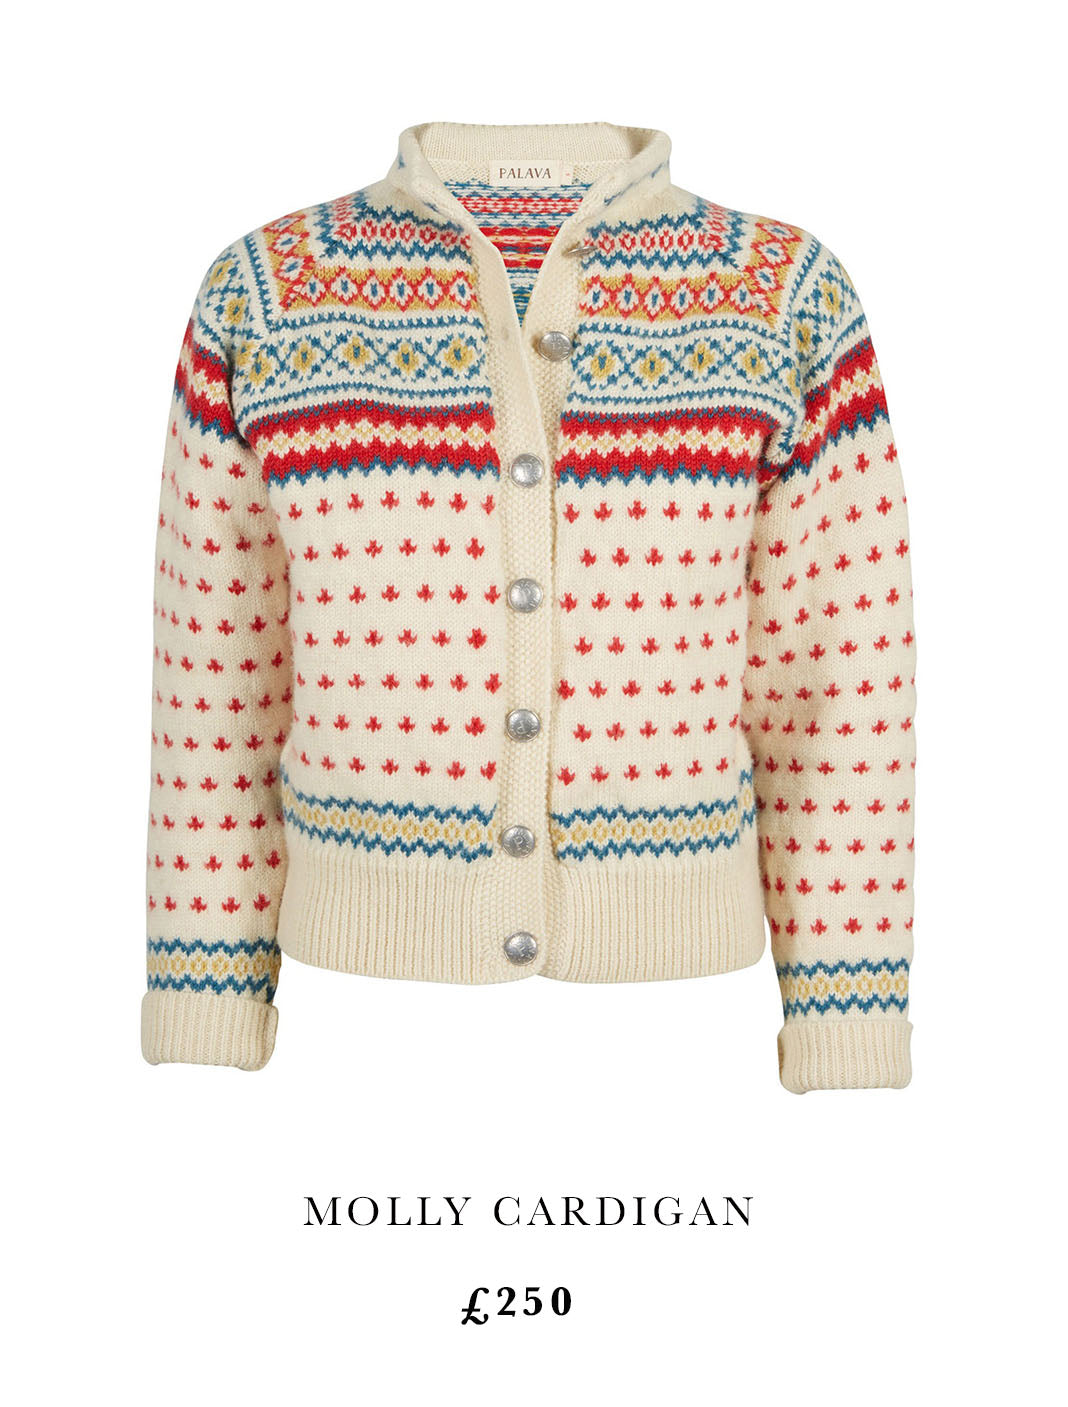 image of Palava Molly cardigan. Fairisle style in cream with red teal and yellow aspects to knit.